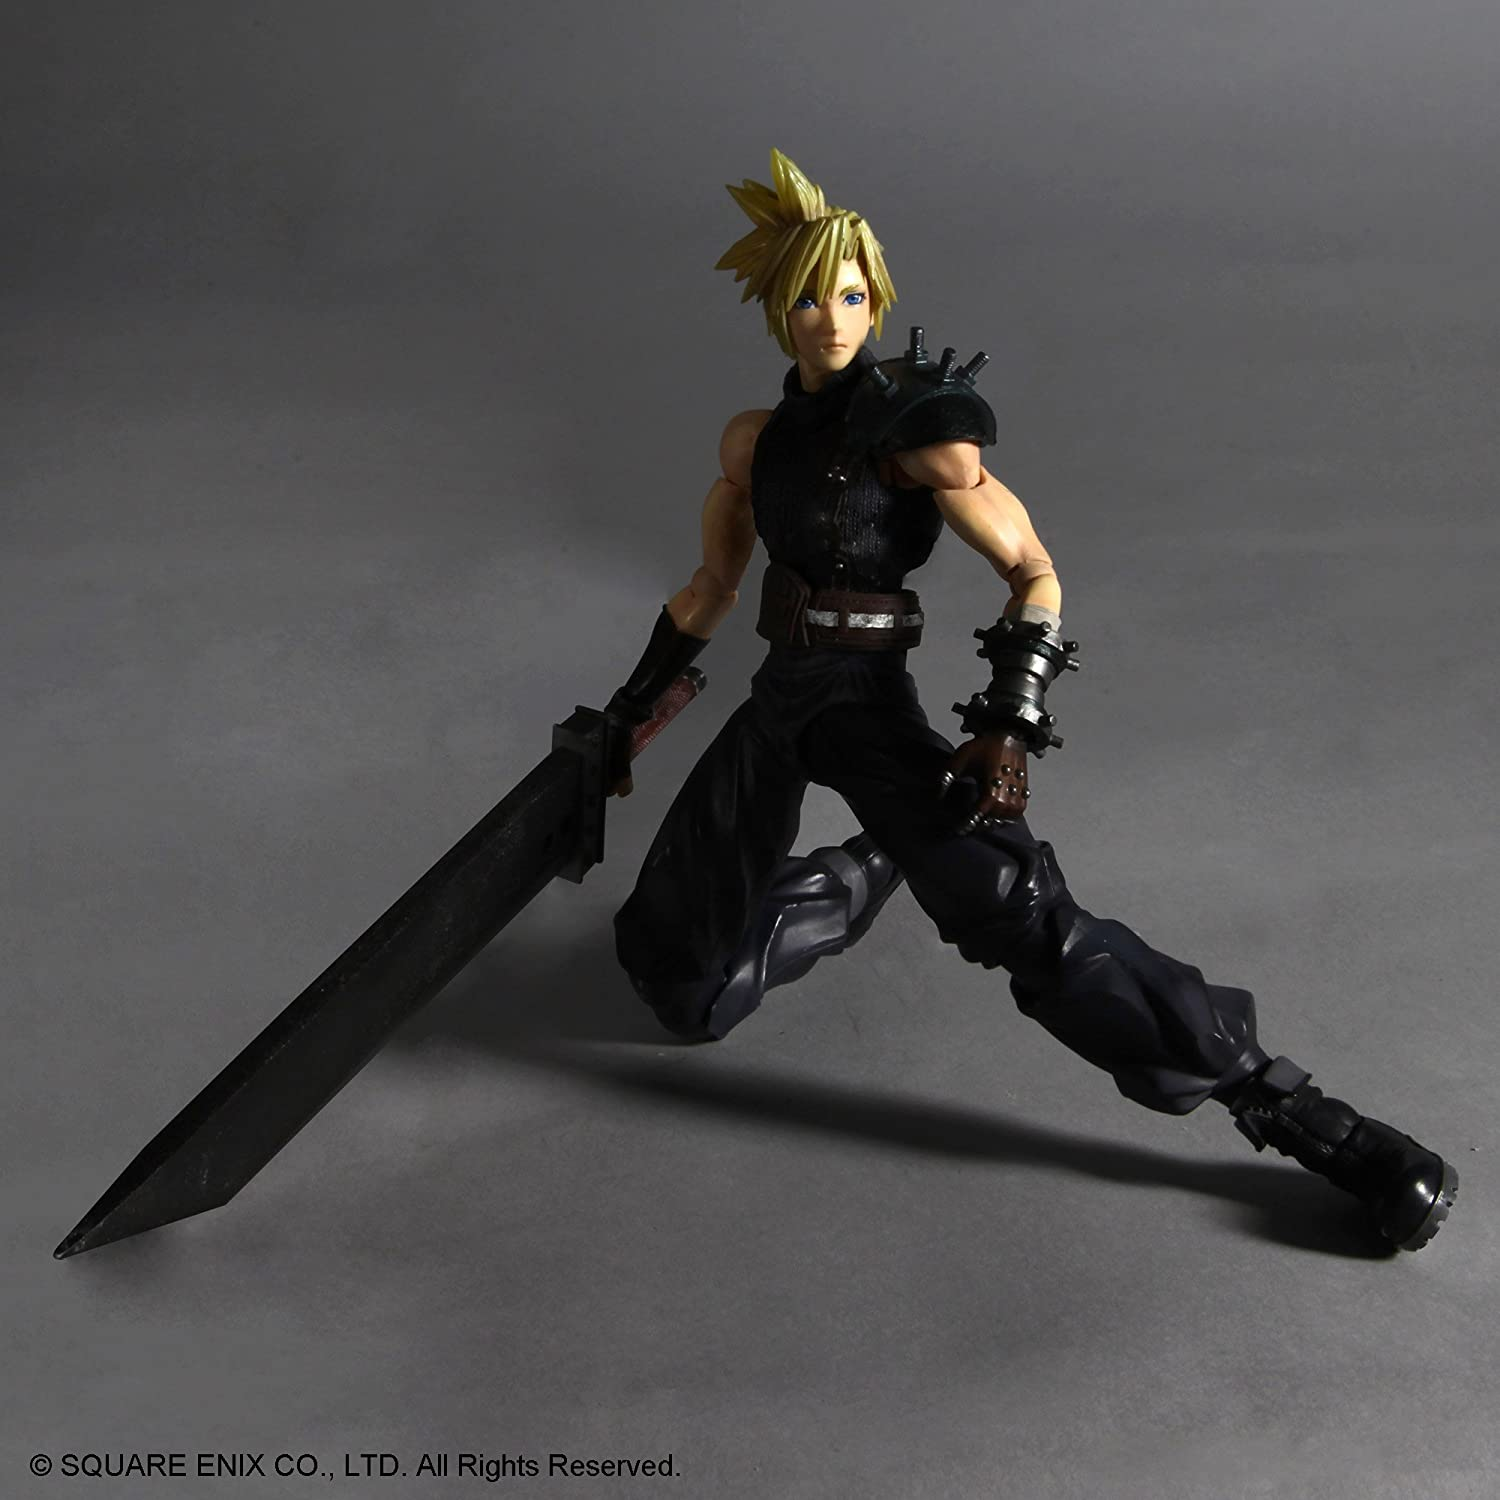 Amazoncom Square Enix Dissidia Final Fantasy Cloud Strife Play - Cleaning invoice template free square enix online store